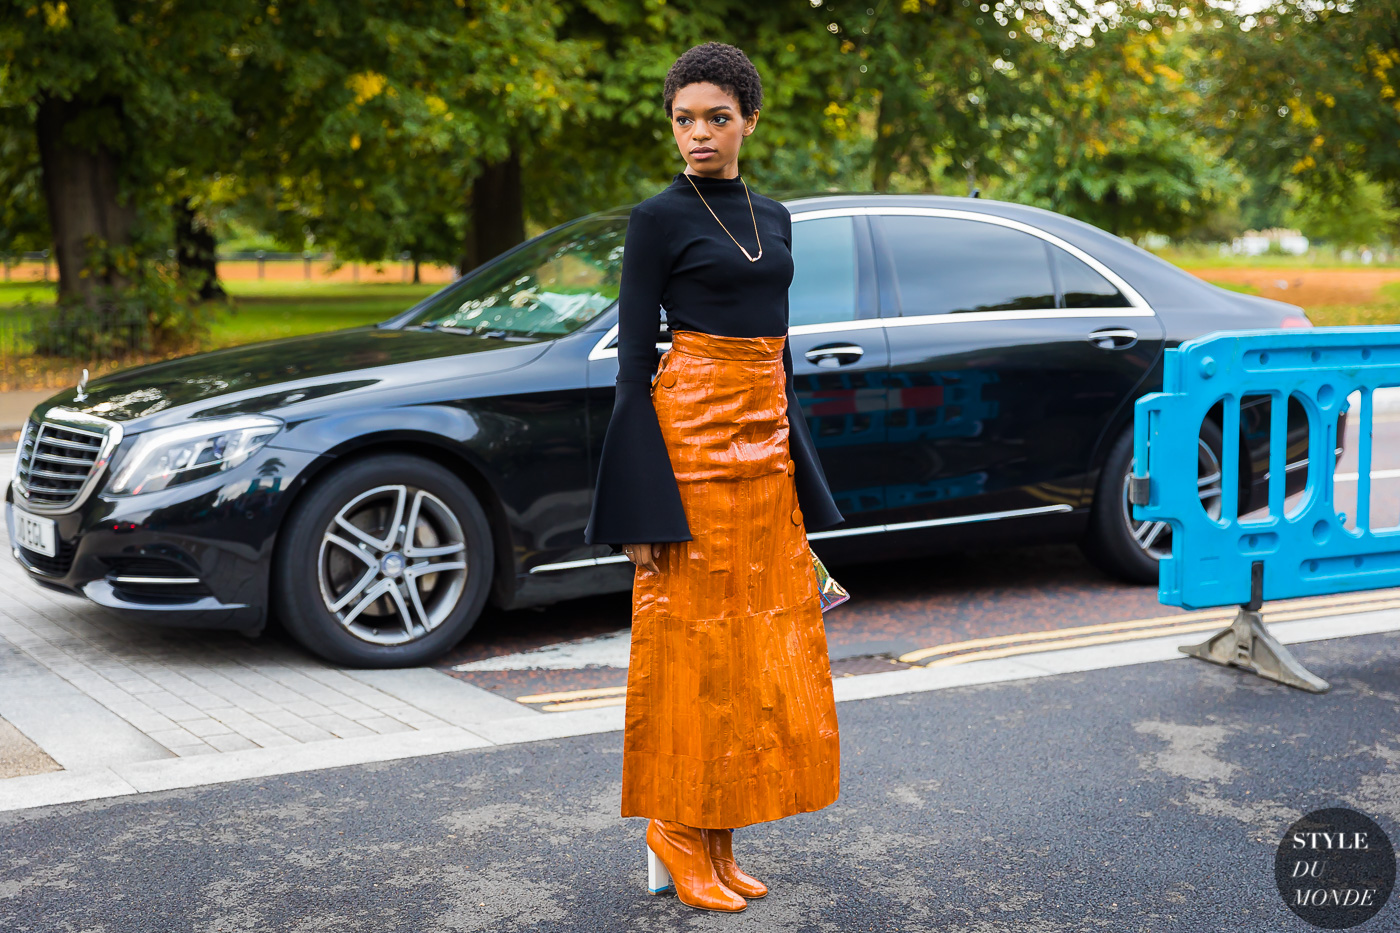 Selah Marley by STYLEDUMONDE Street Style Fashion Photography_48A8618